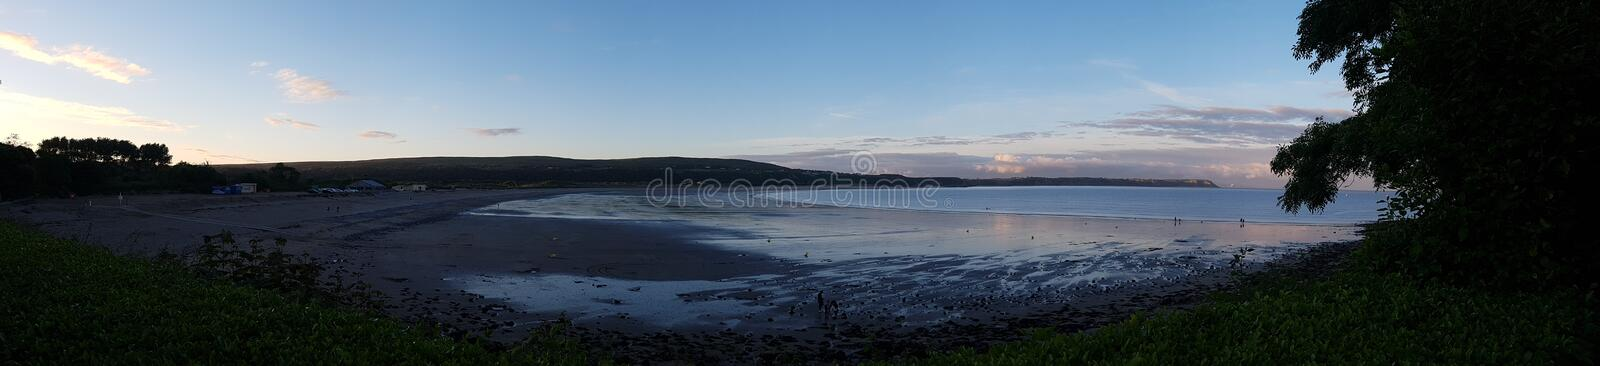 Oxwich bay Wales royalty free stock photo